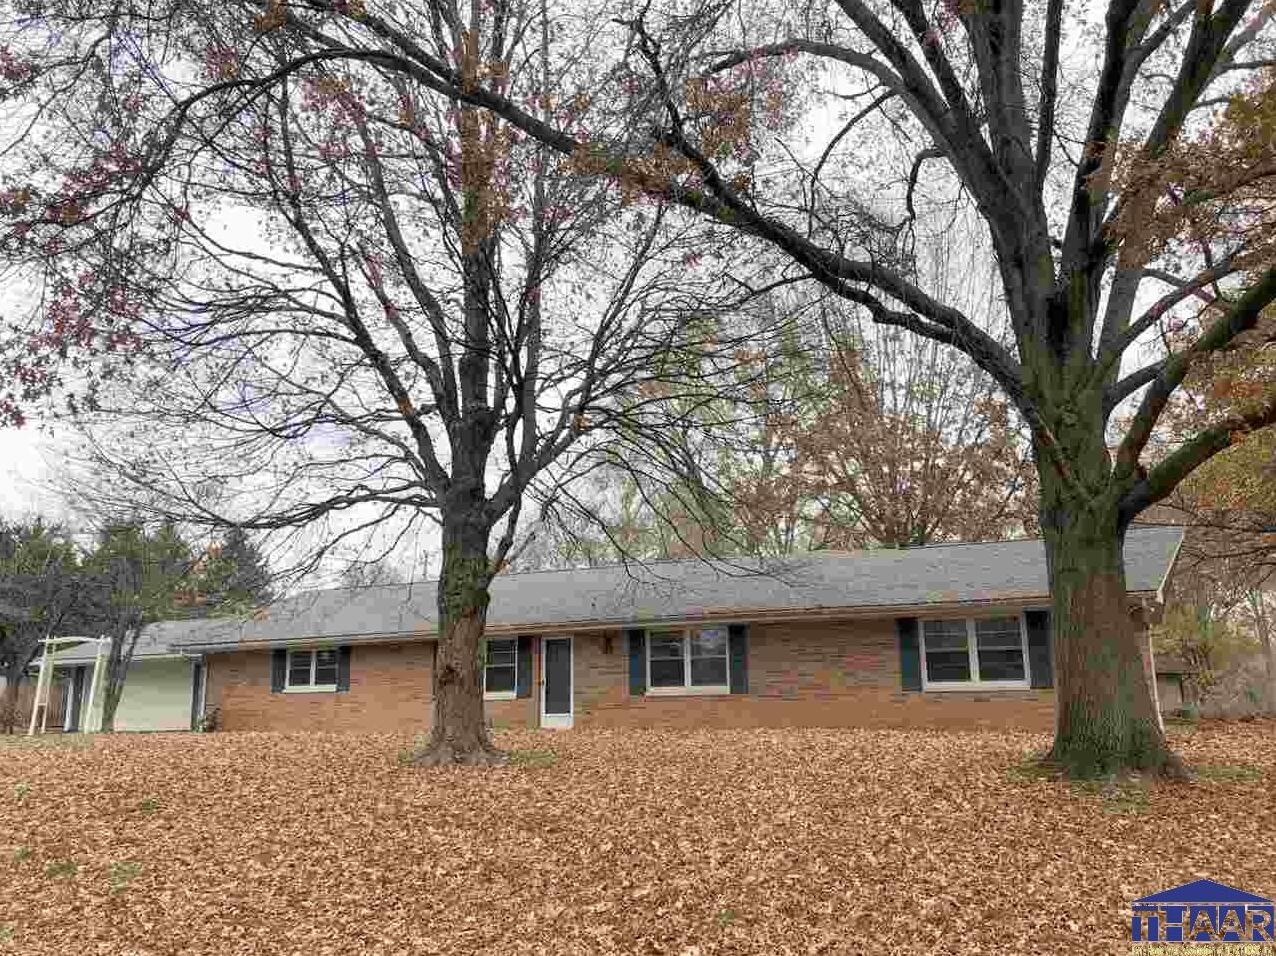 Photo of 58 Briarwood Drive Terre Haute IN 47803